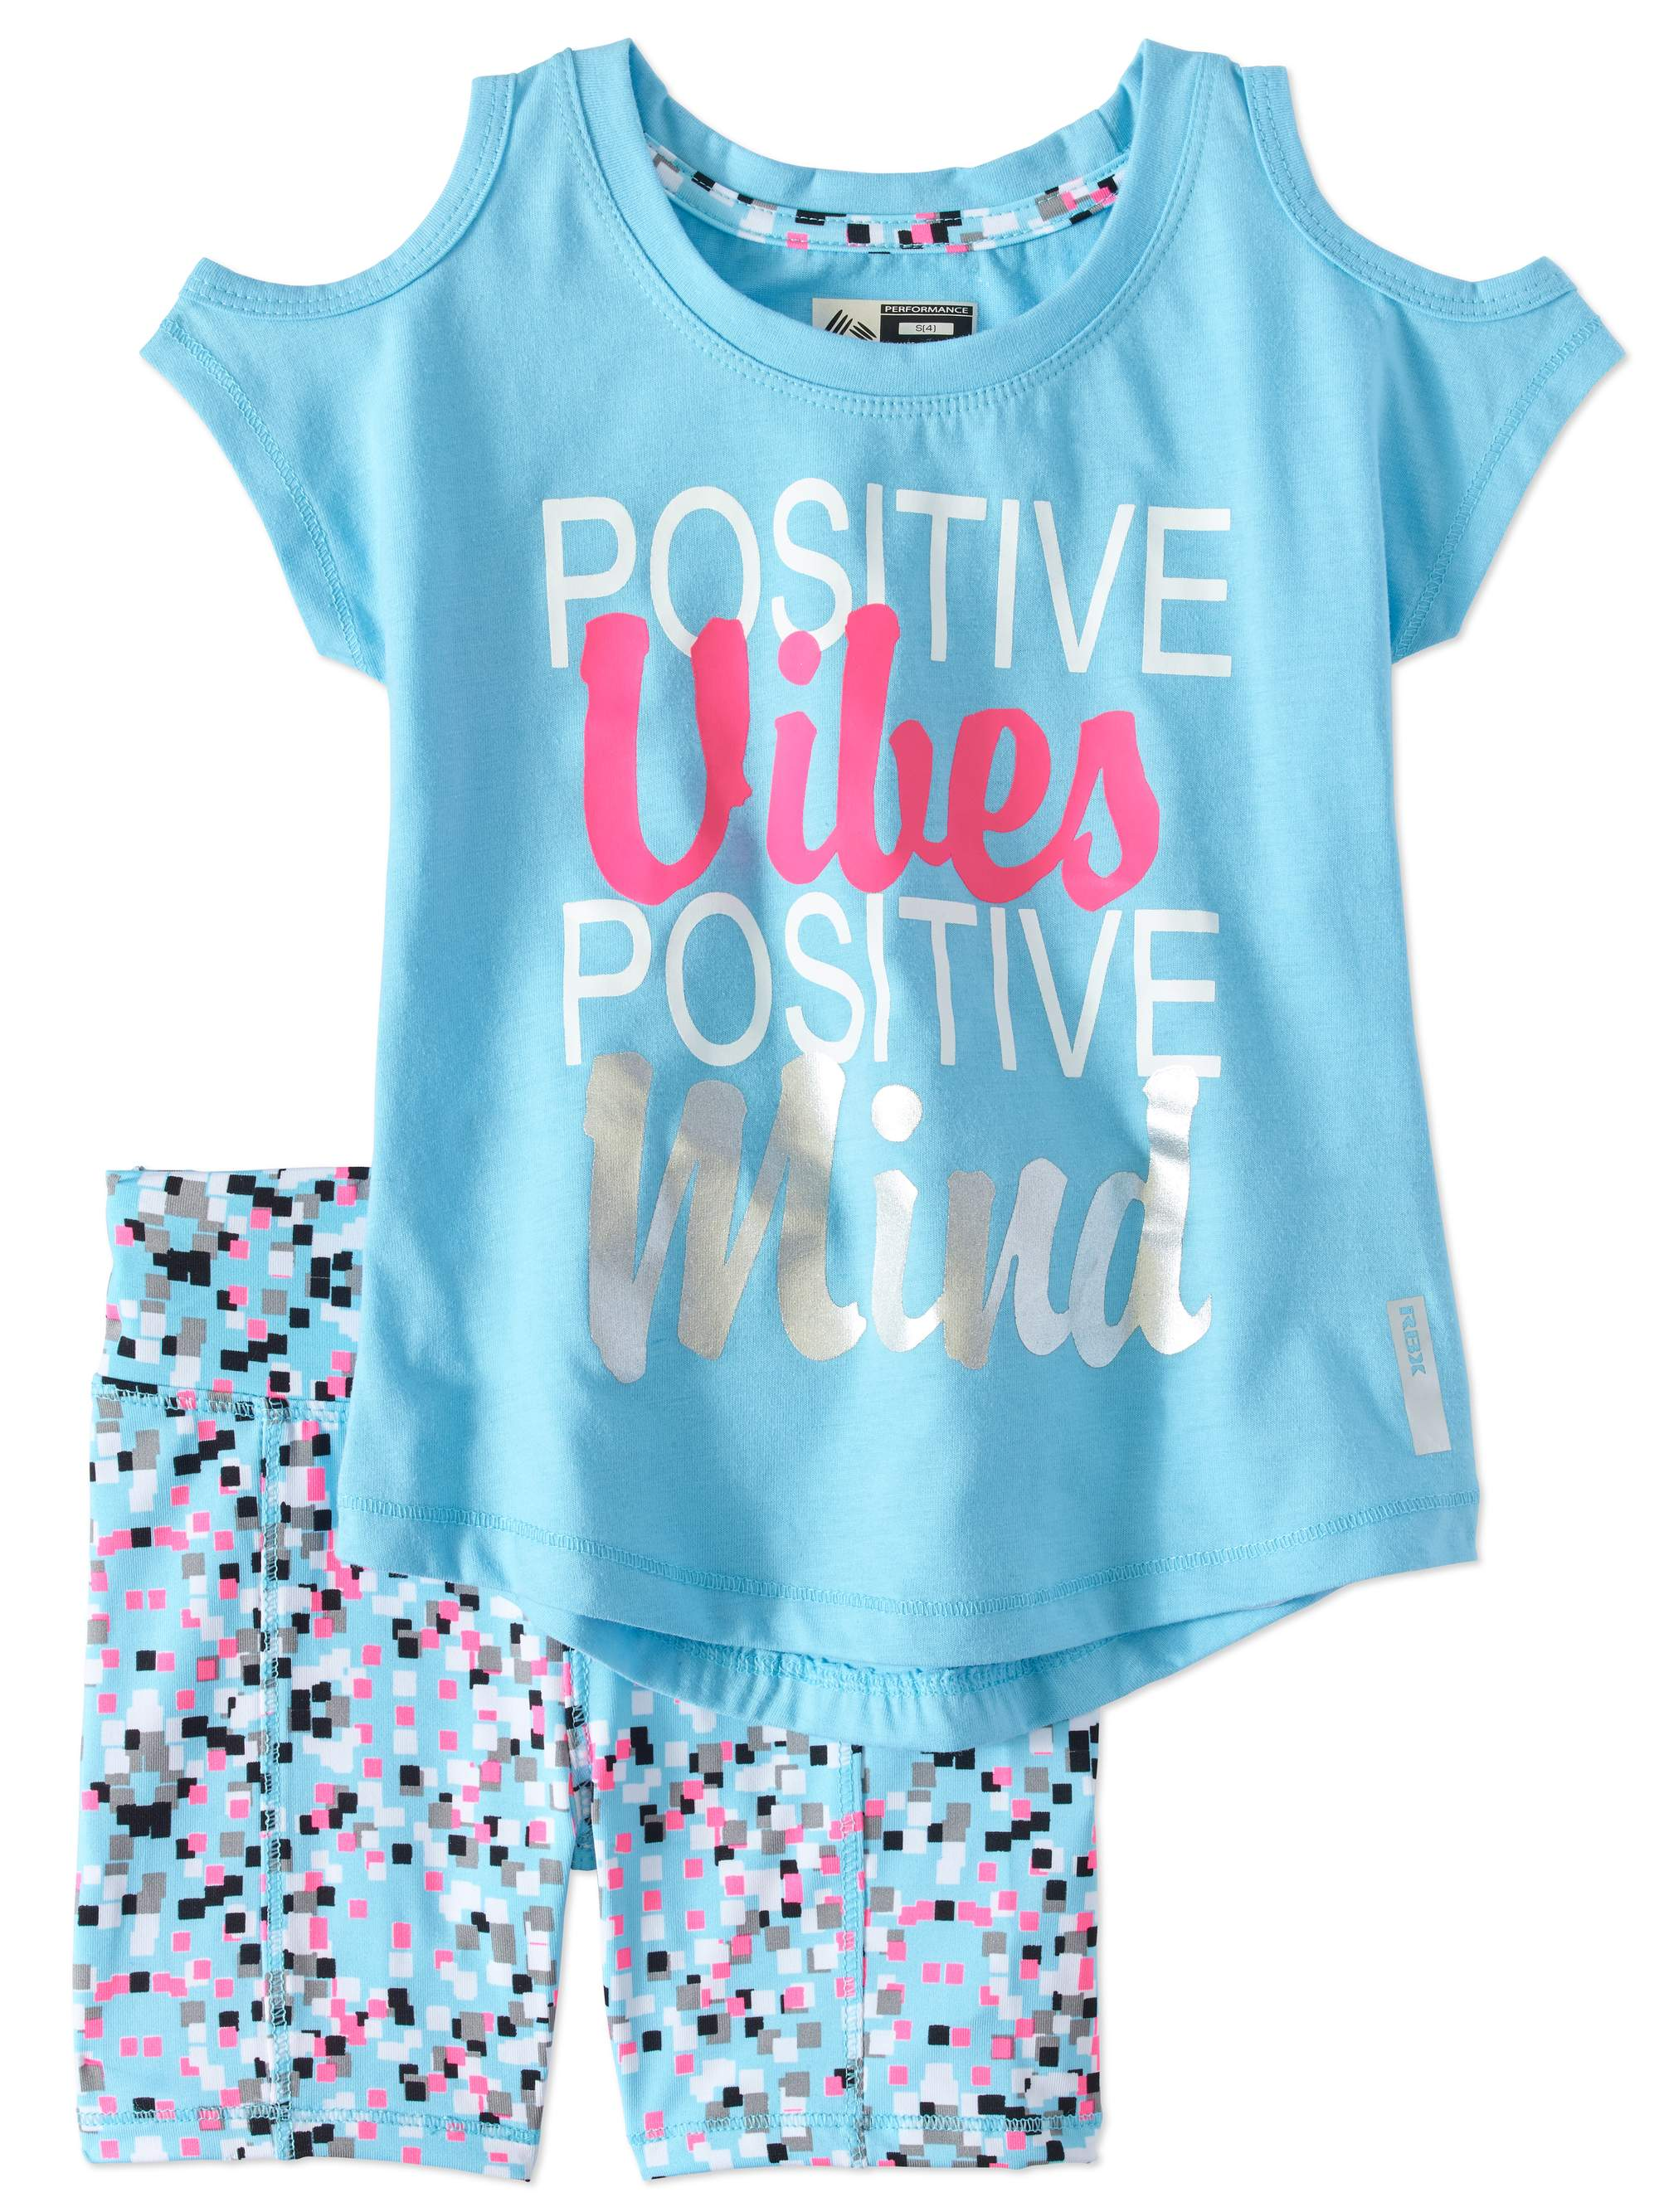 Little Girls' 4-6X Cold Shoulder Graphic Tee and Bike Short 2-Piece Active Set